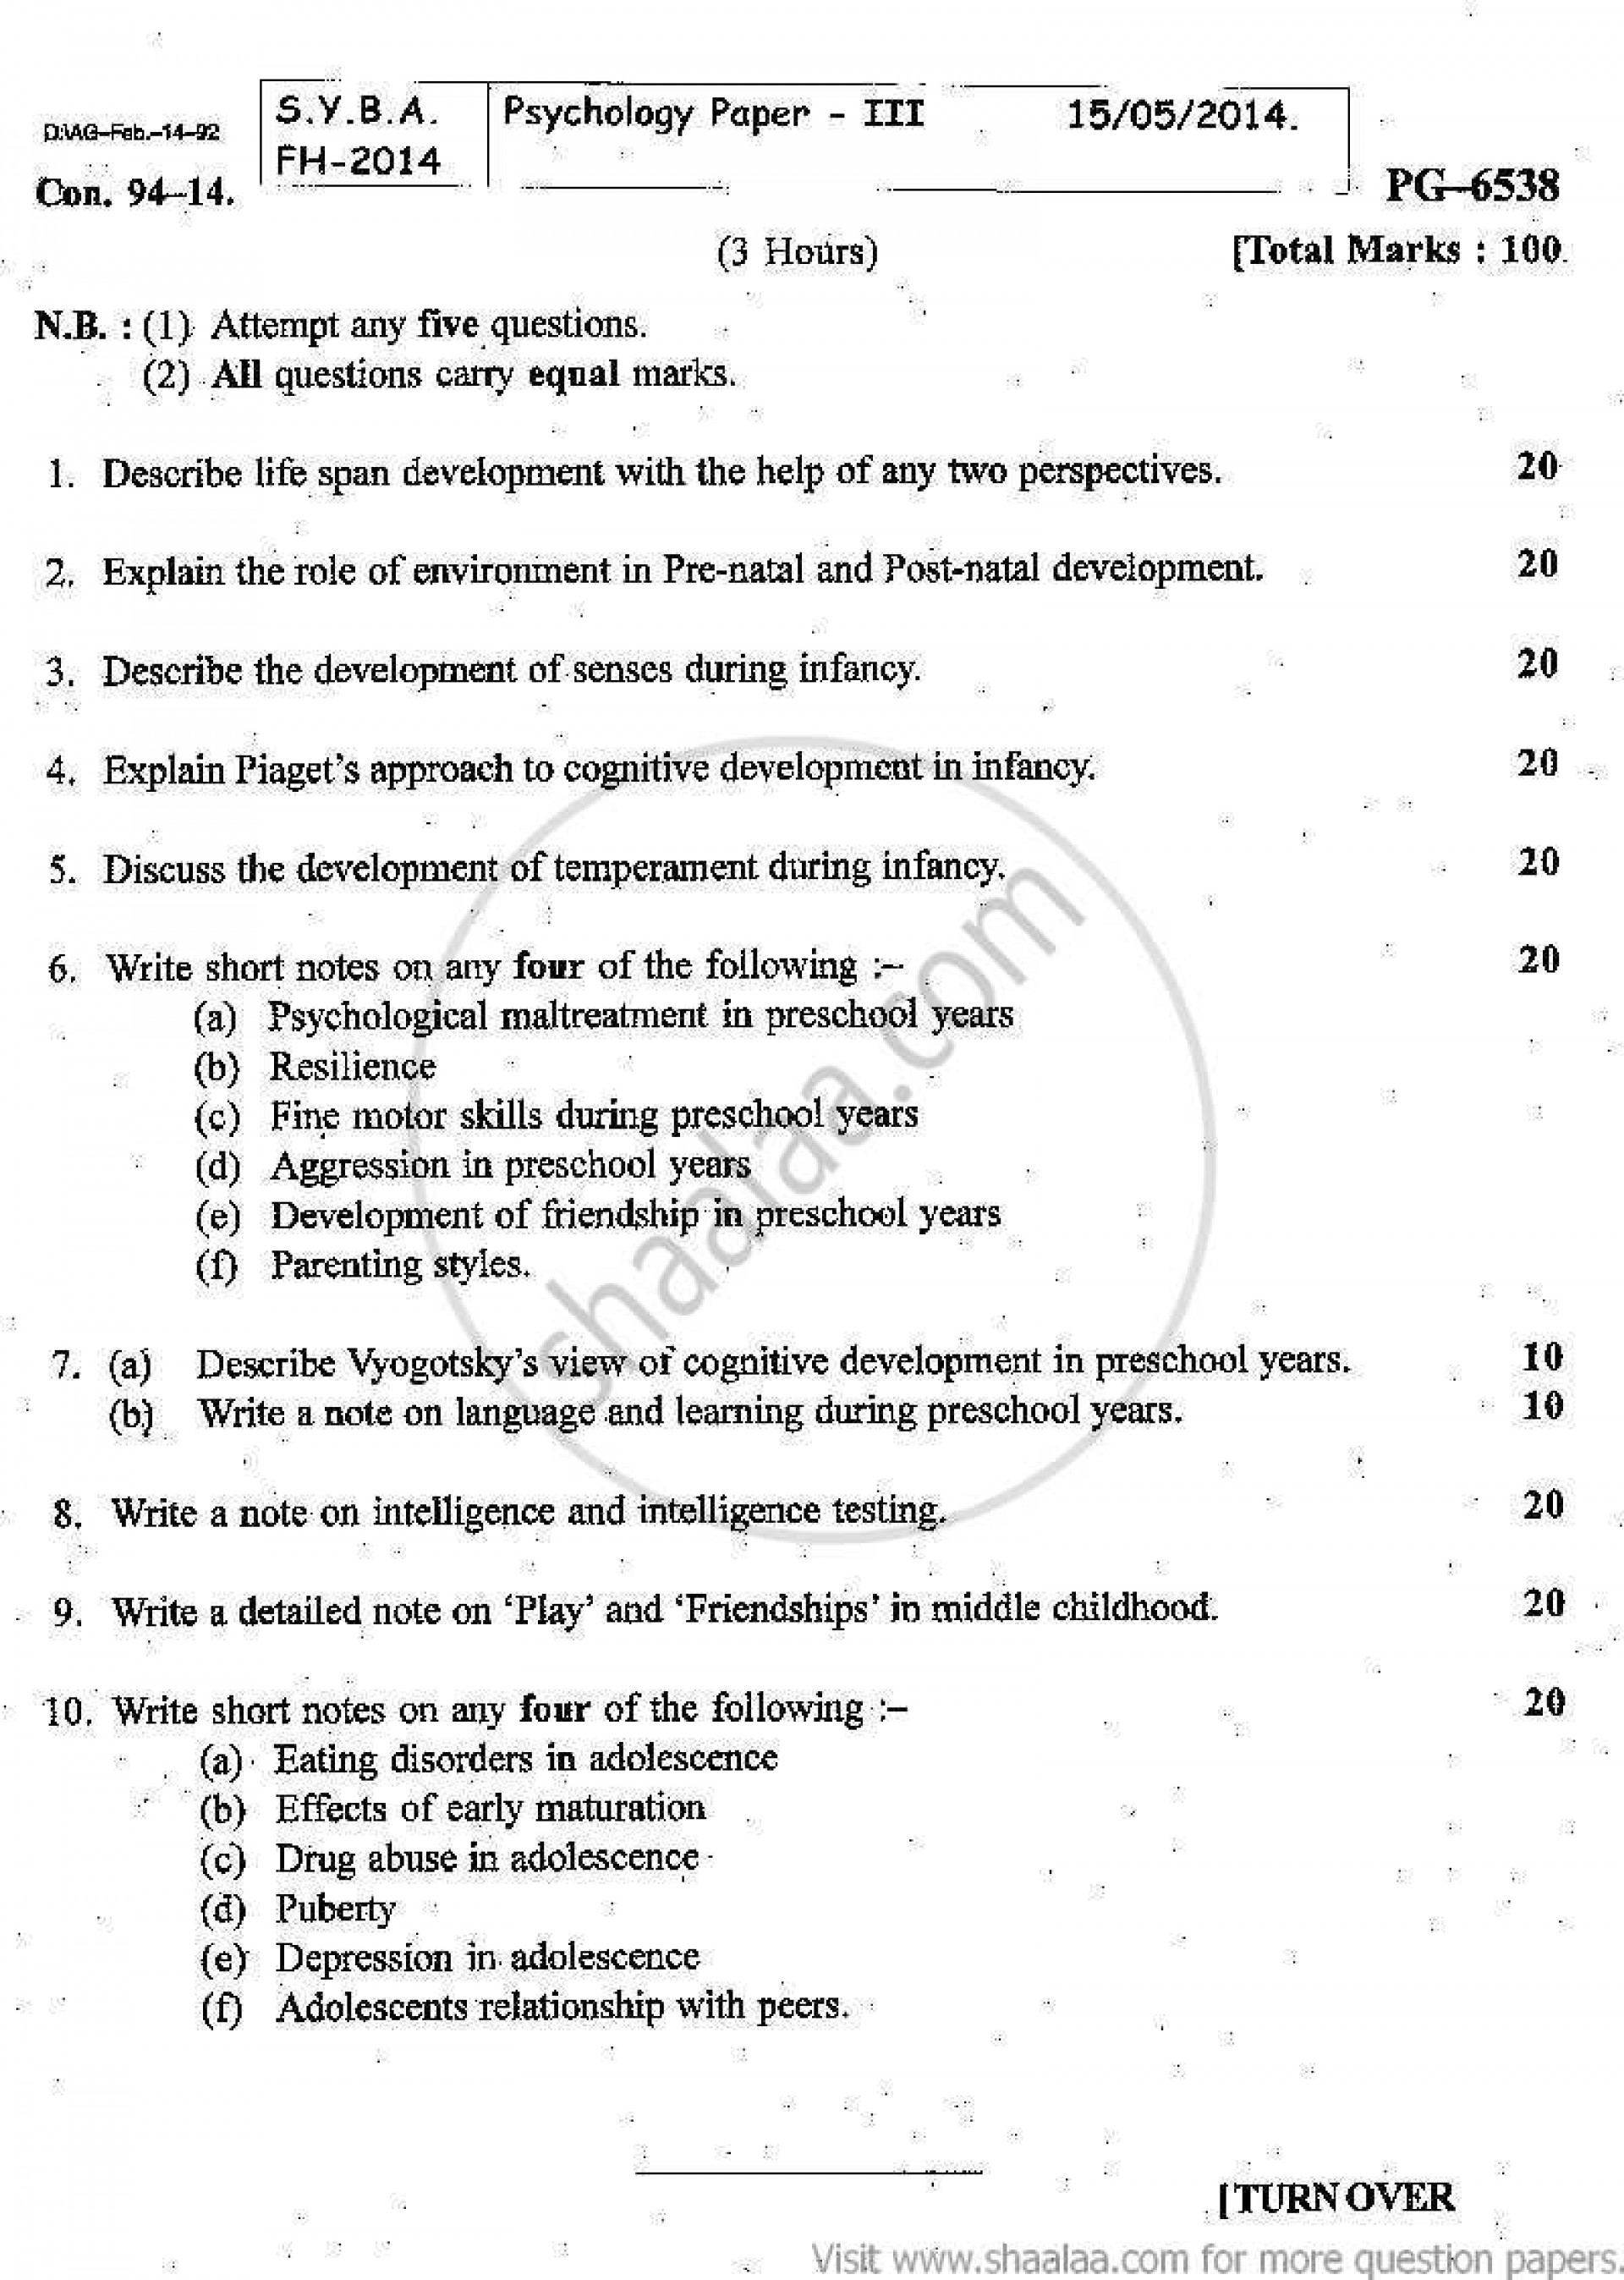 019 Developmental Psychology Essay Gender Bias Help Papers Atsl Ip Writing Service Topics Research Child Paper Dreaded For Potential 1920